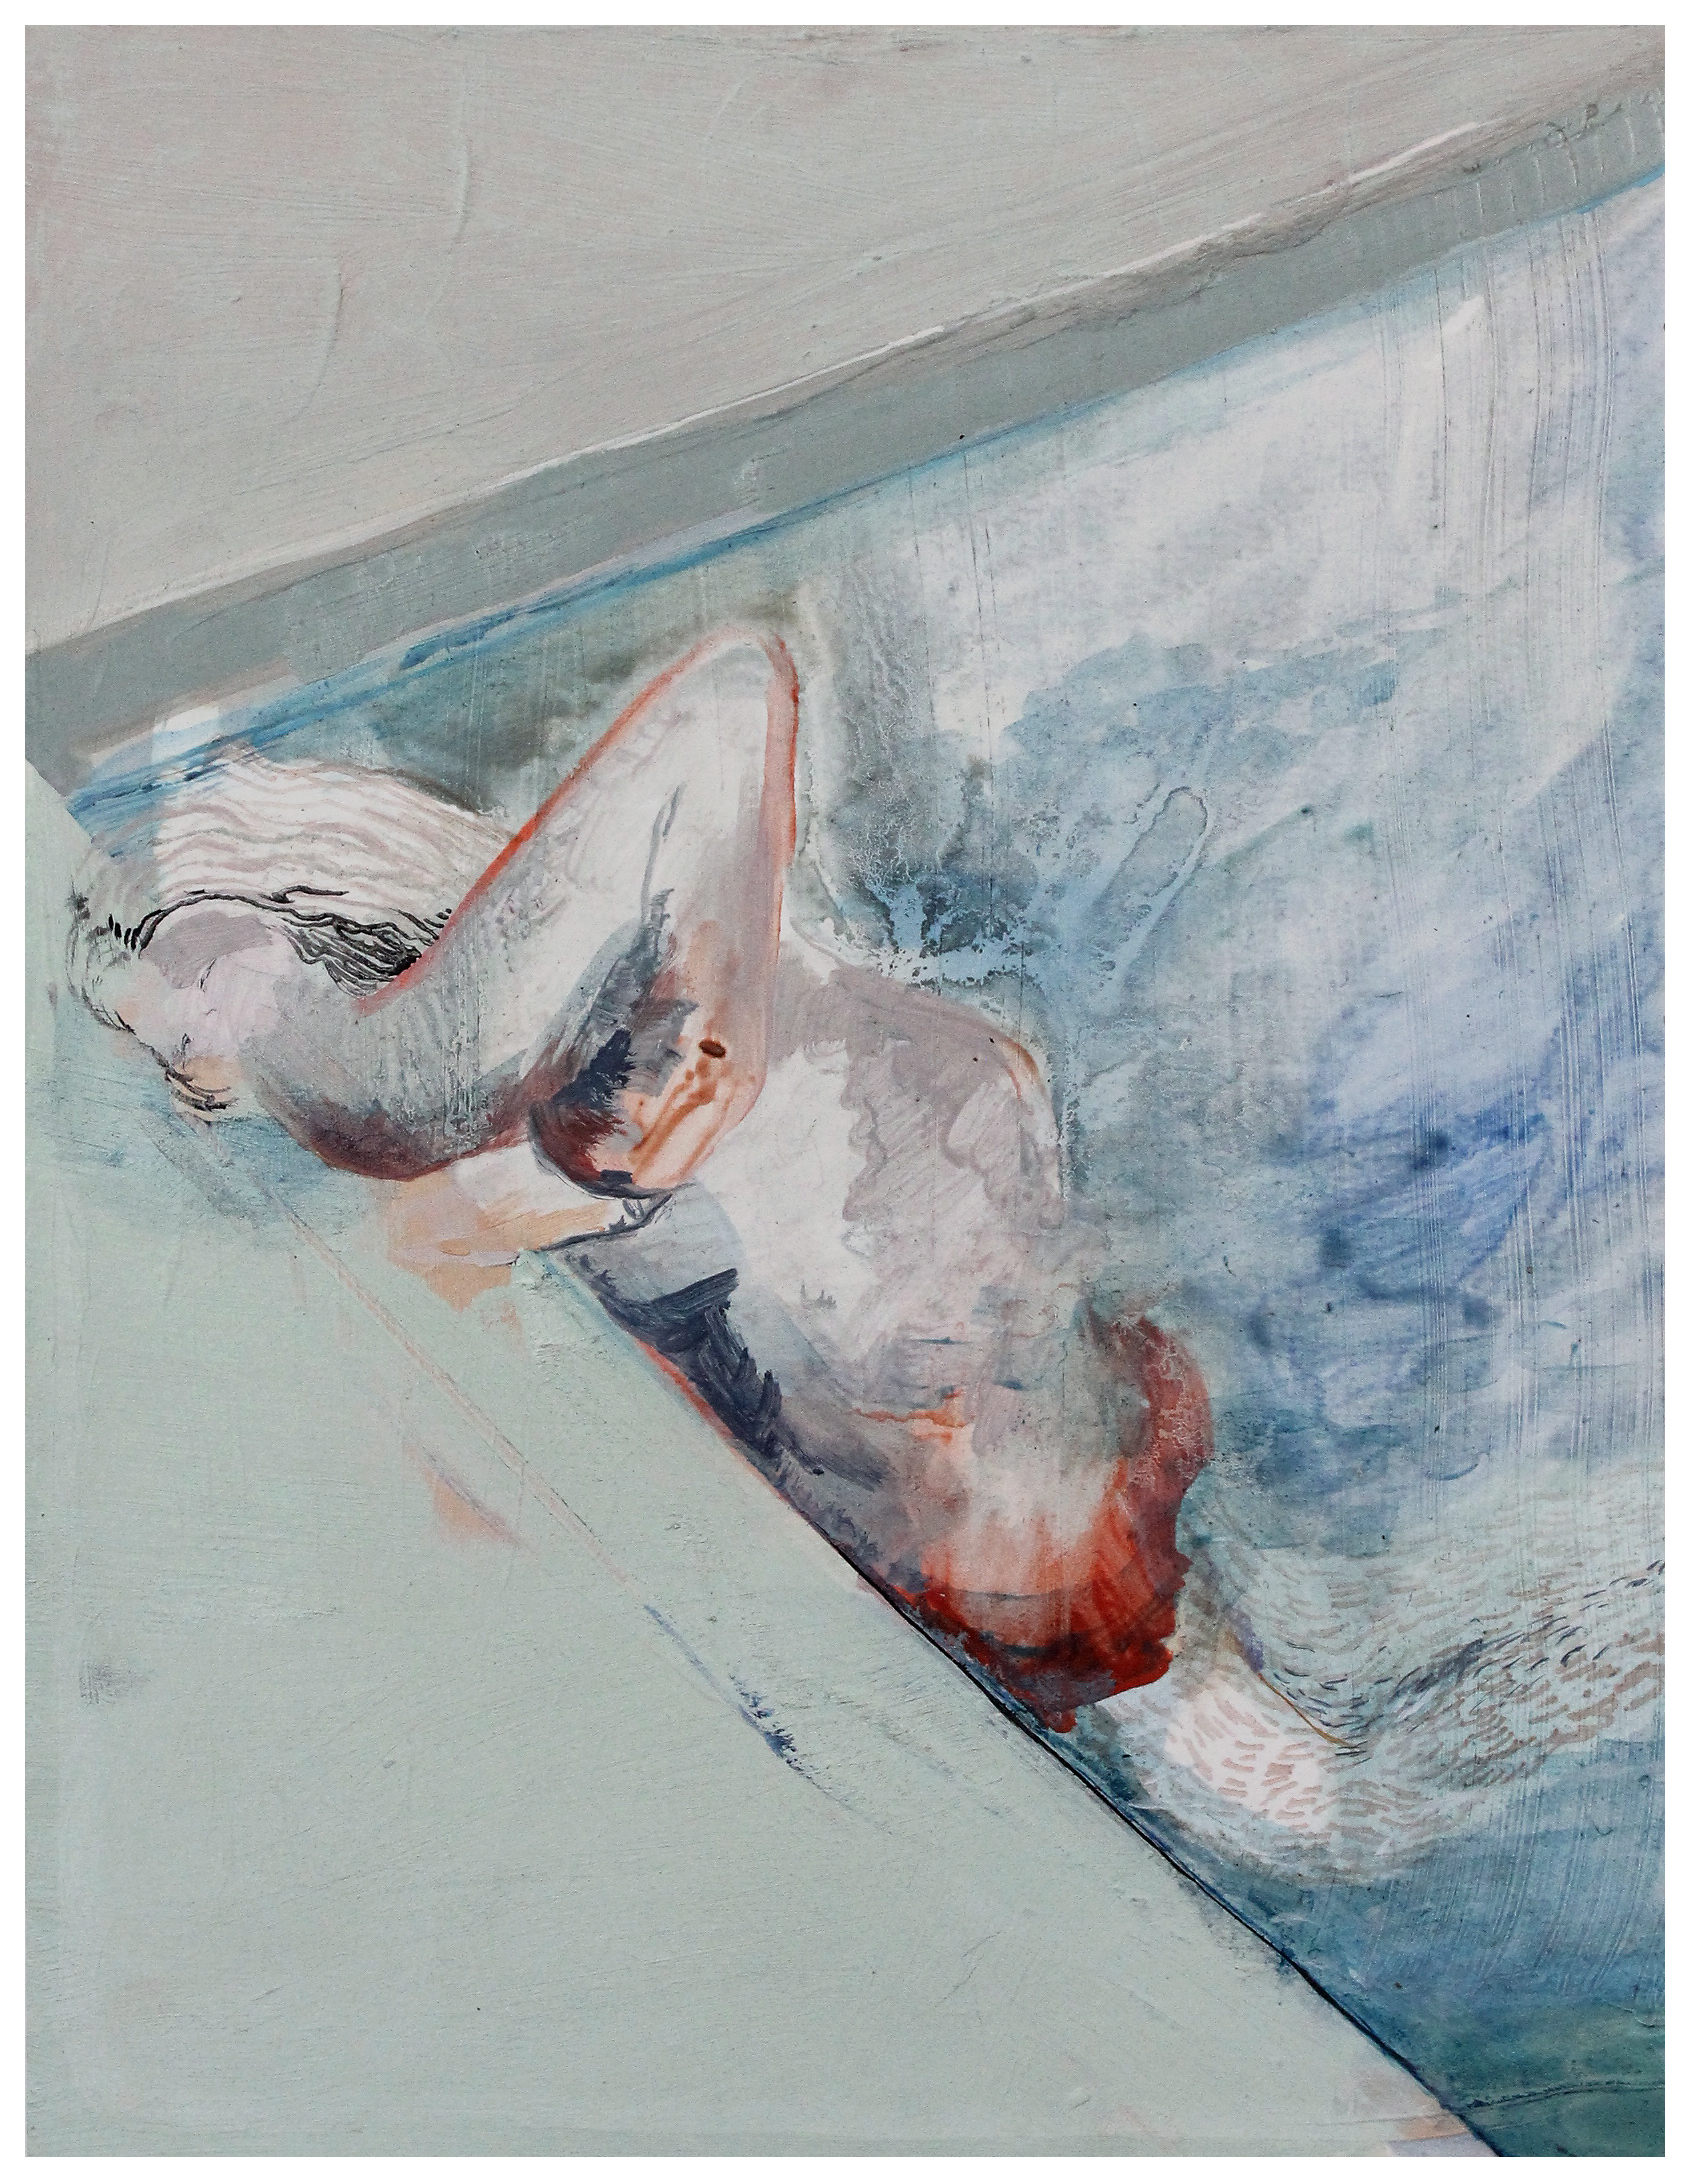 Swimming-Instead-of-Painting-10x13-2014.jpg